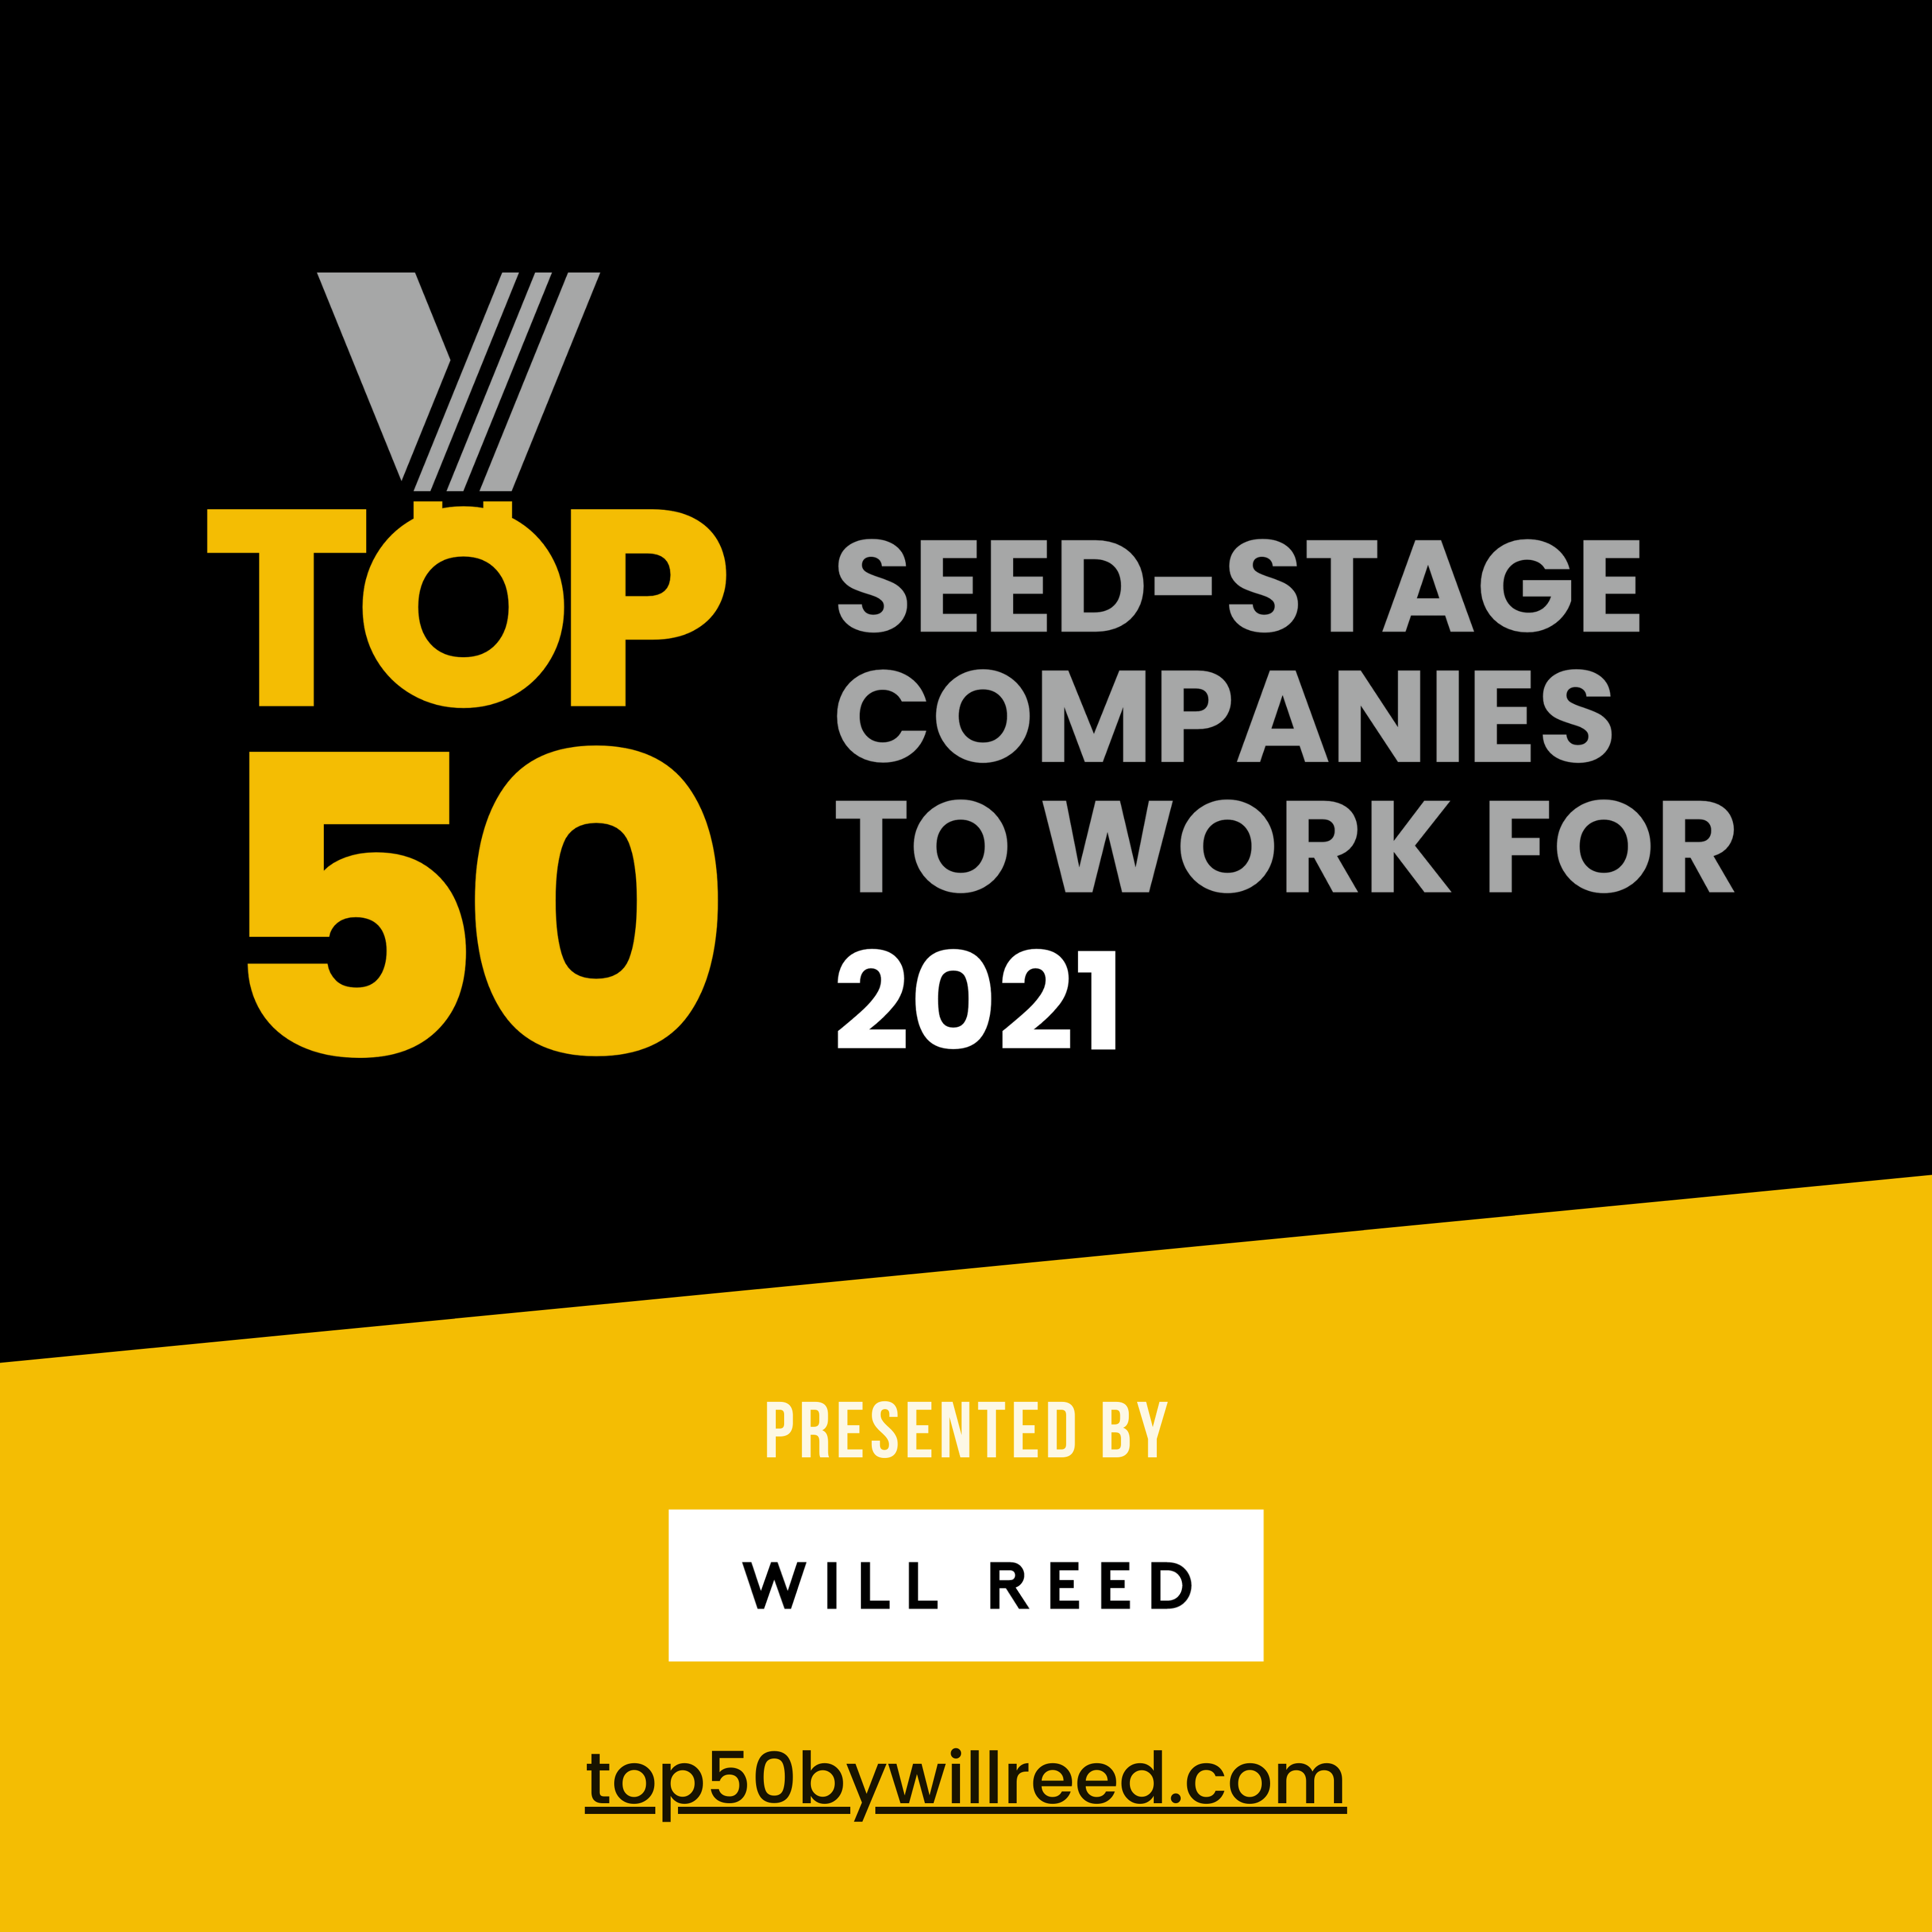 Top 50 Companies to Work For presented by Will Reed